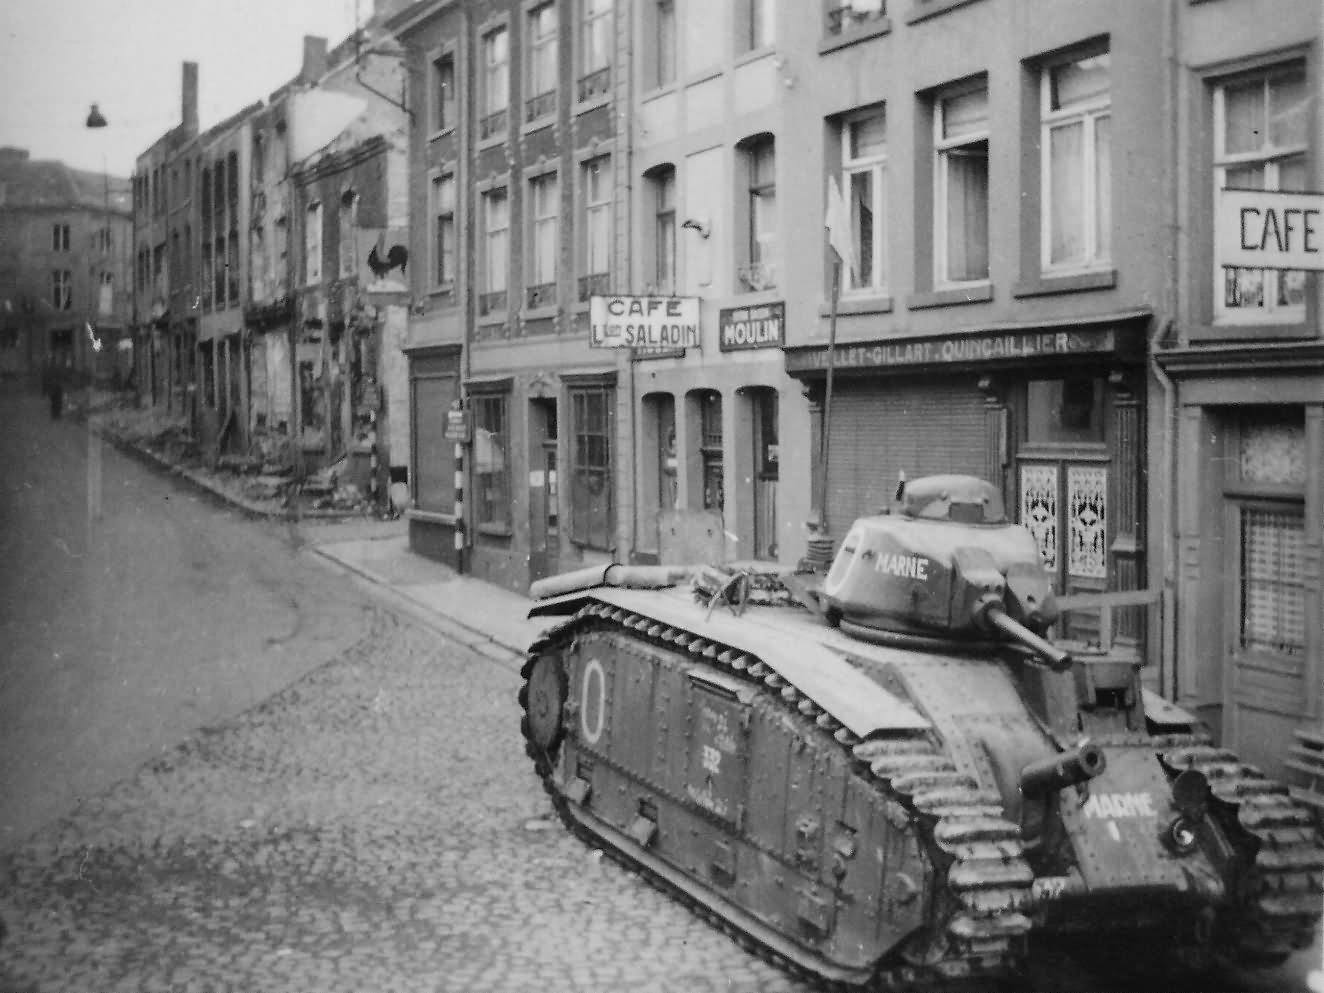 B1 bis tank #332 of the 37th BCC named Marne – Beaumont Belgium 1940